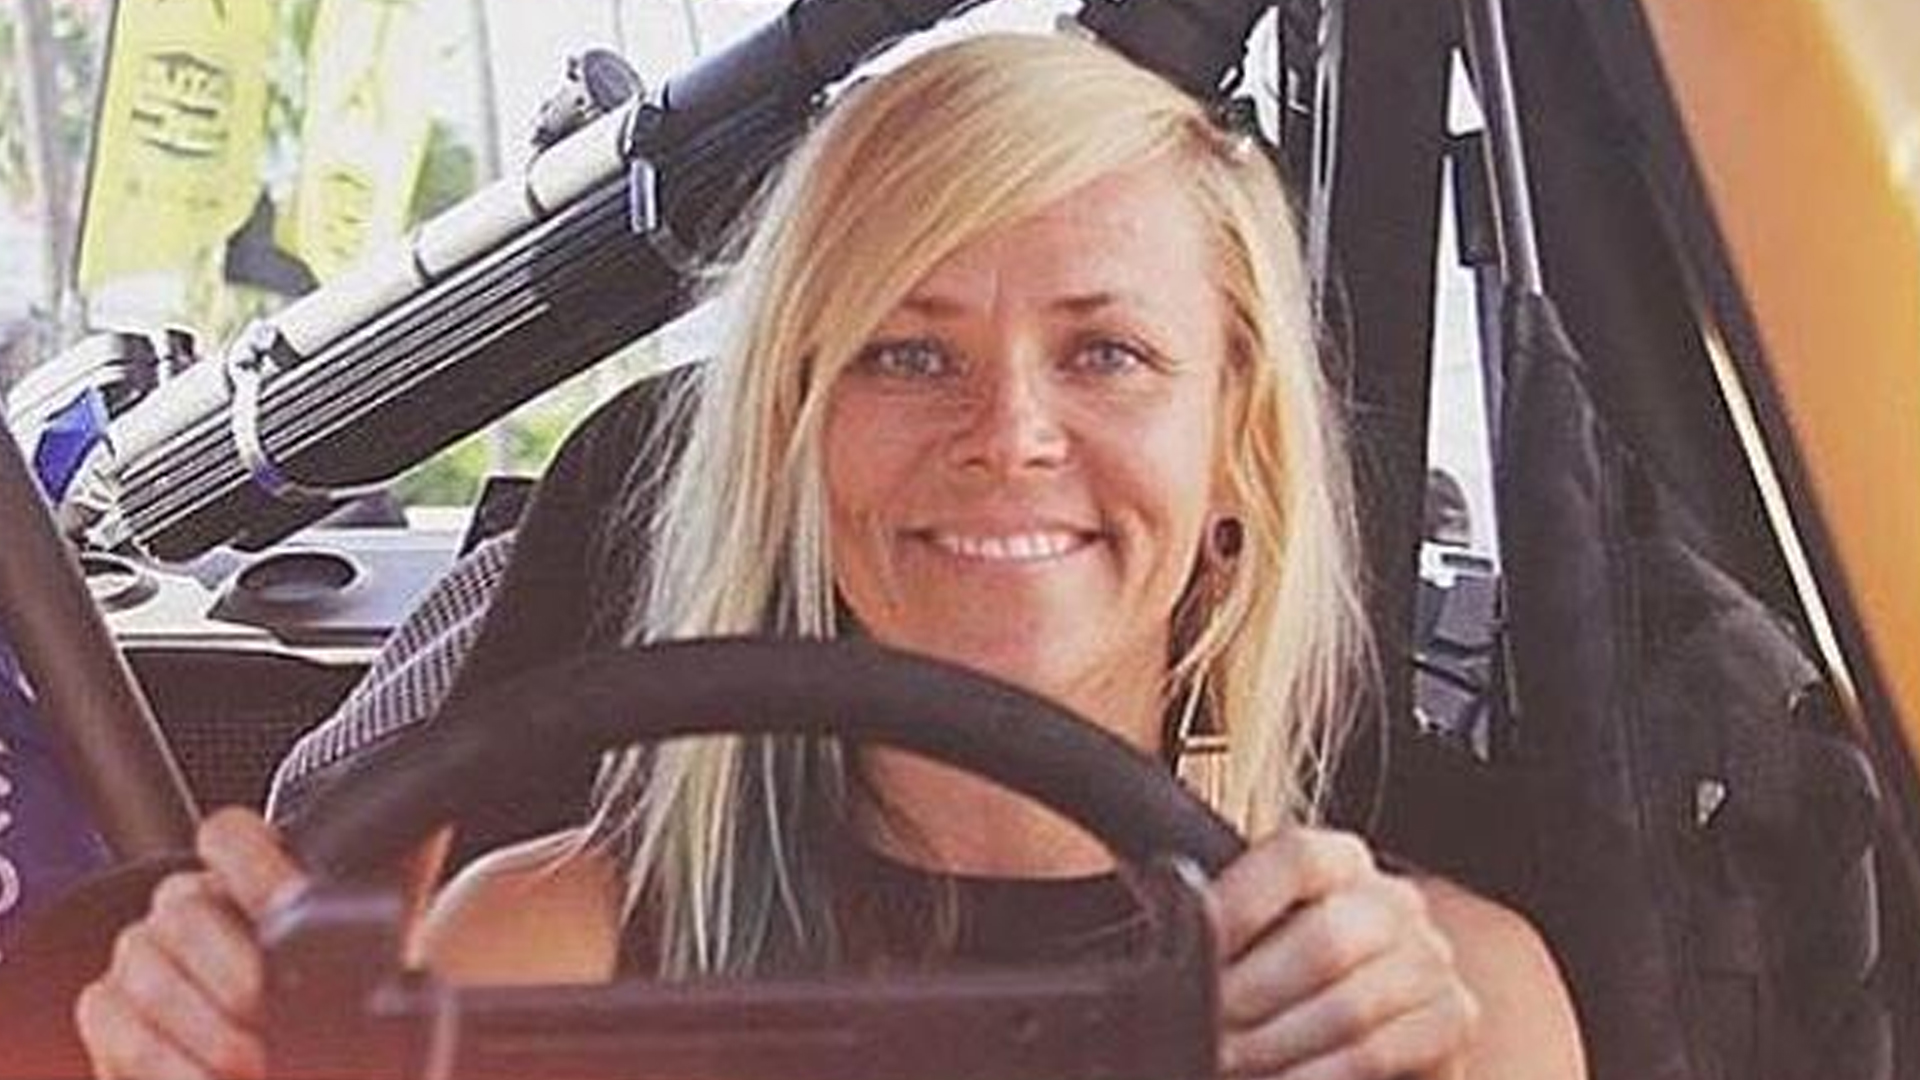 Jet-car racer Jessi Combs dies trying to break land-speed record